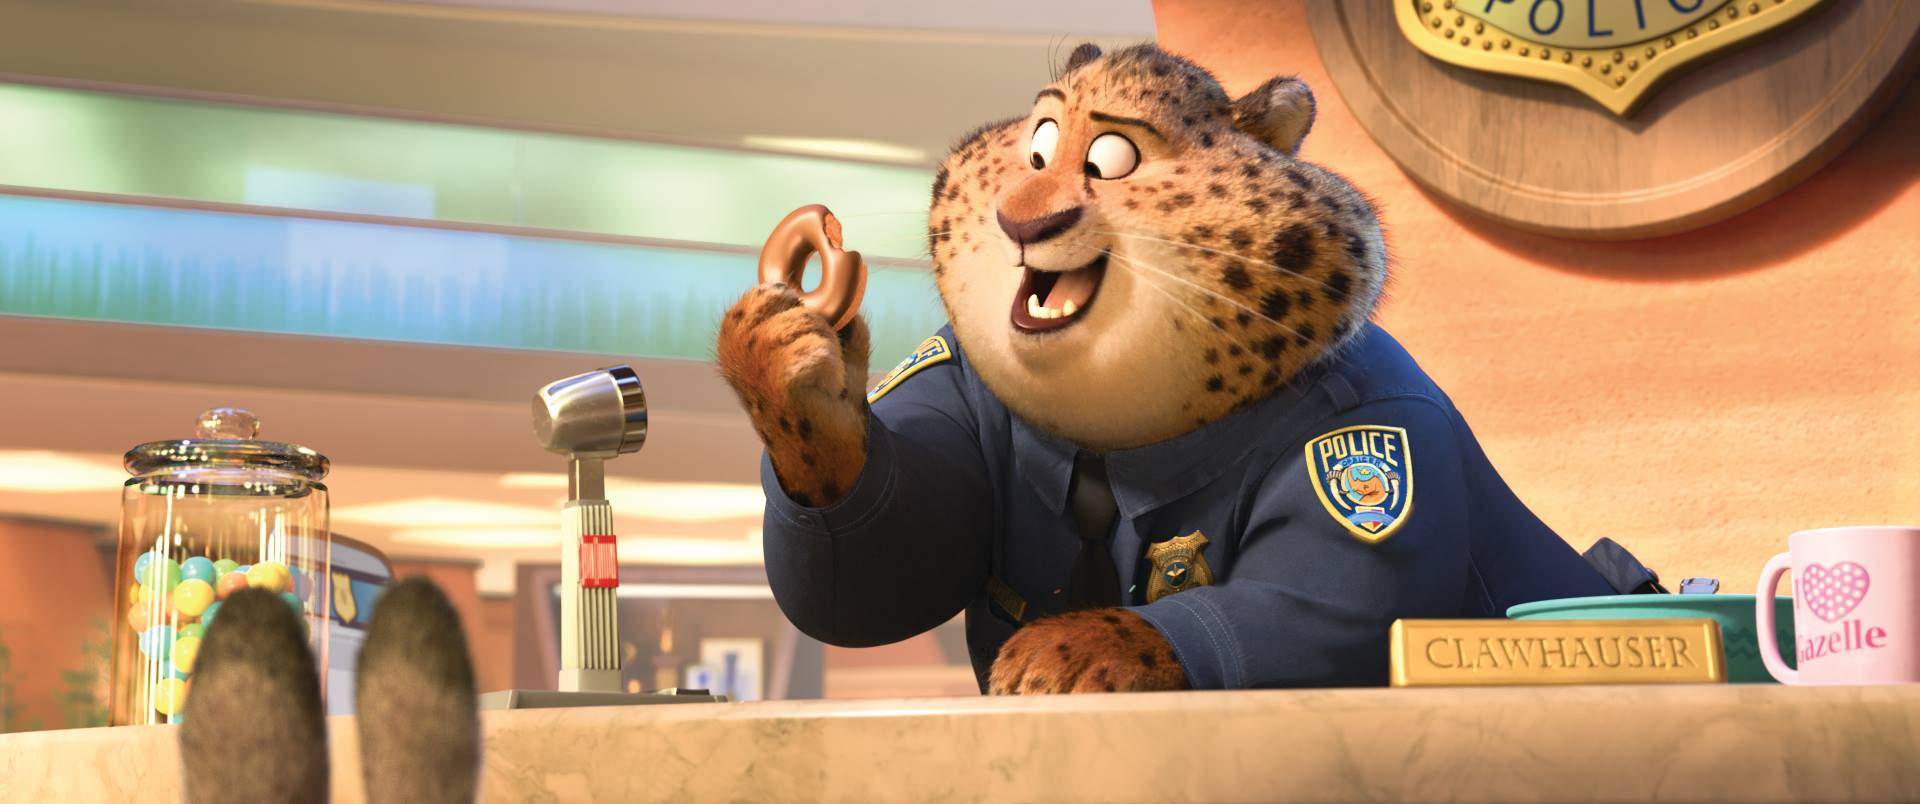 Cute Zootopia Wallpaper Phone Movies 6 More Dumb Reasons Not To Watch Beauty And The